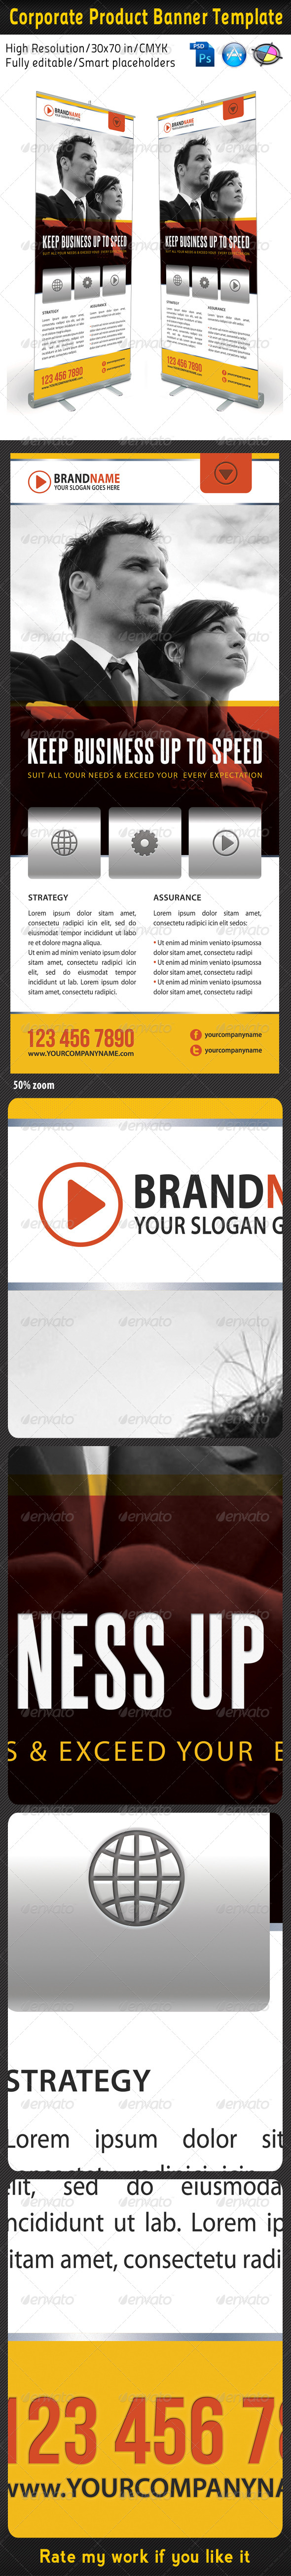 Corporate Multipurpose Banner Template 11 - Signage Print Templates